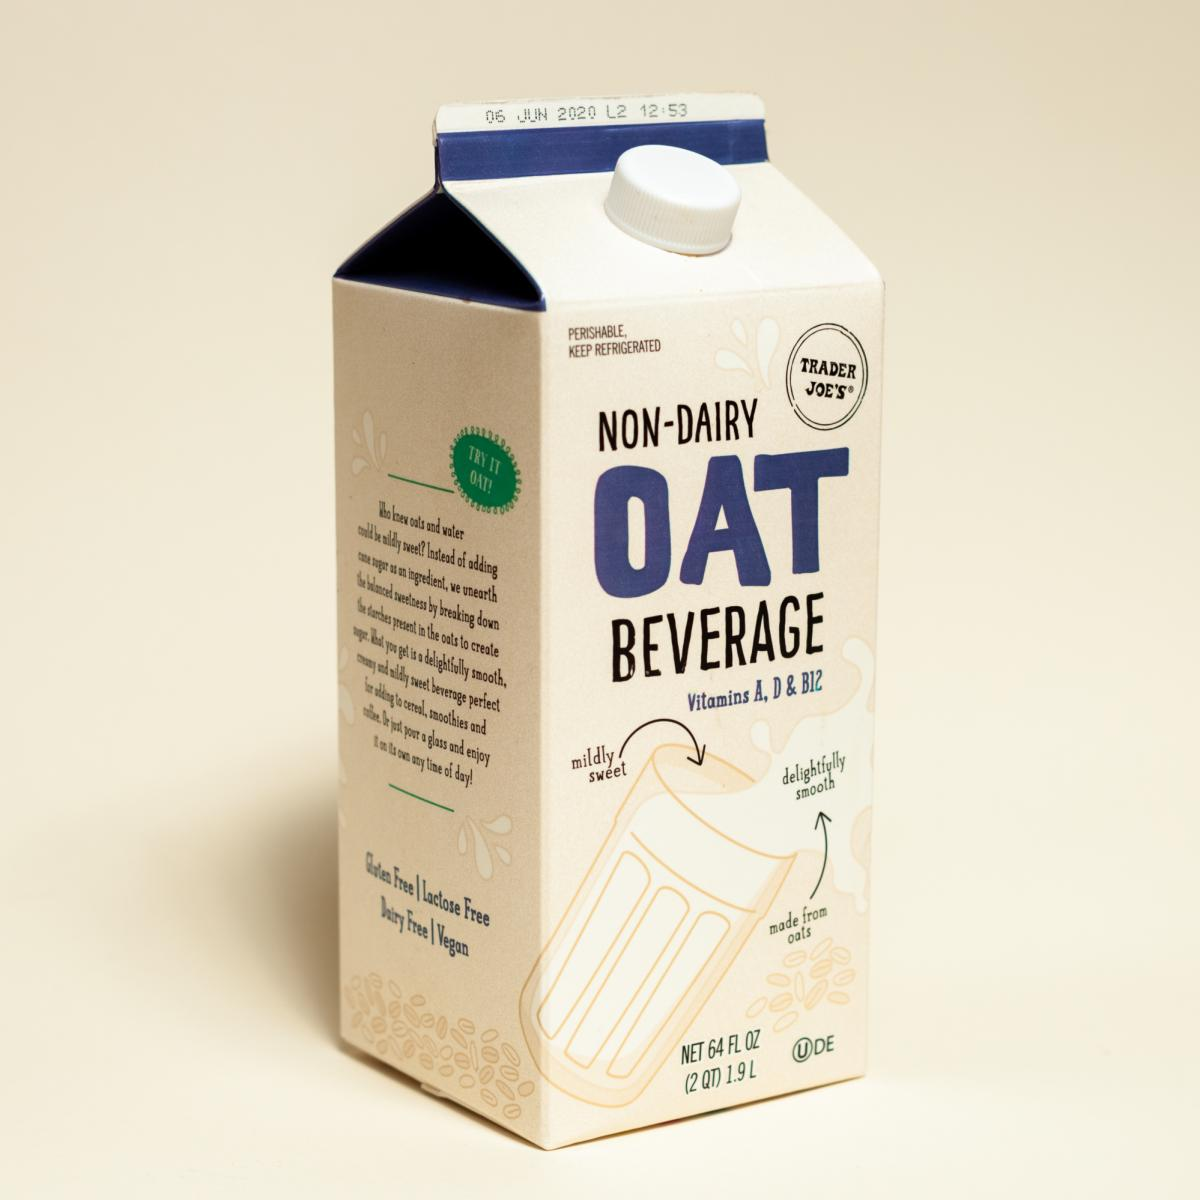 Oat milk has skyrocketed in popularity as people stock up for the pandemic.